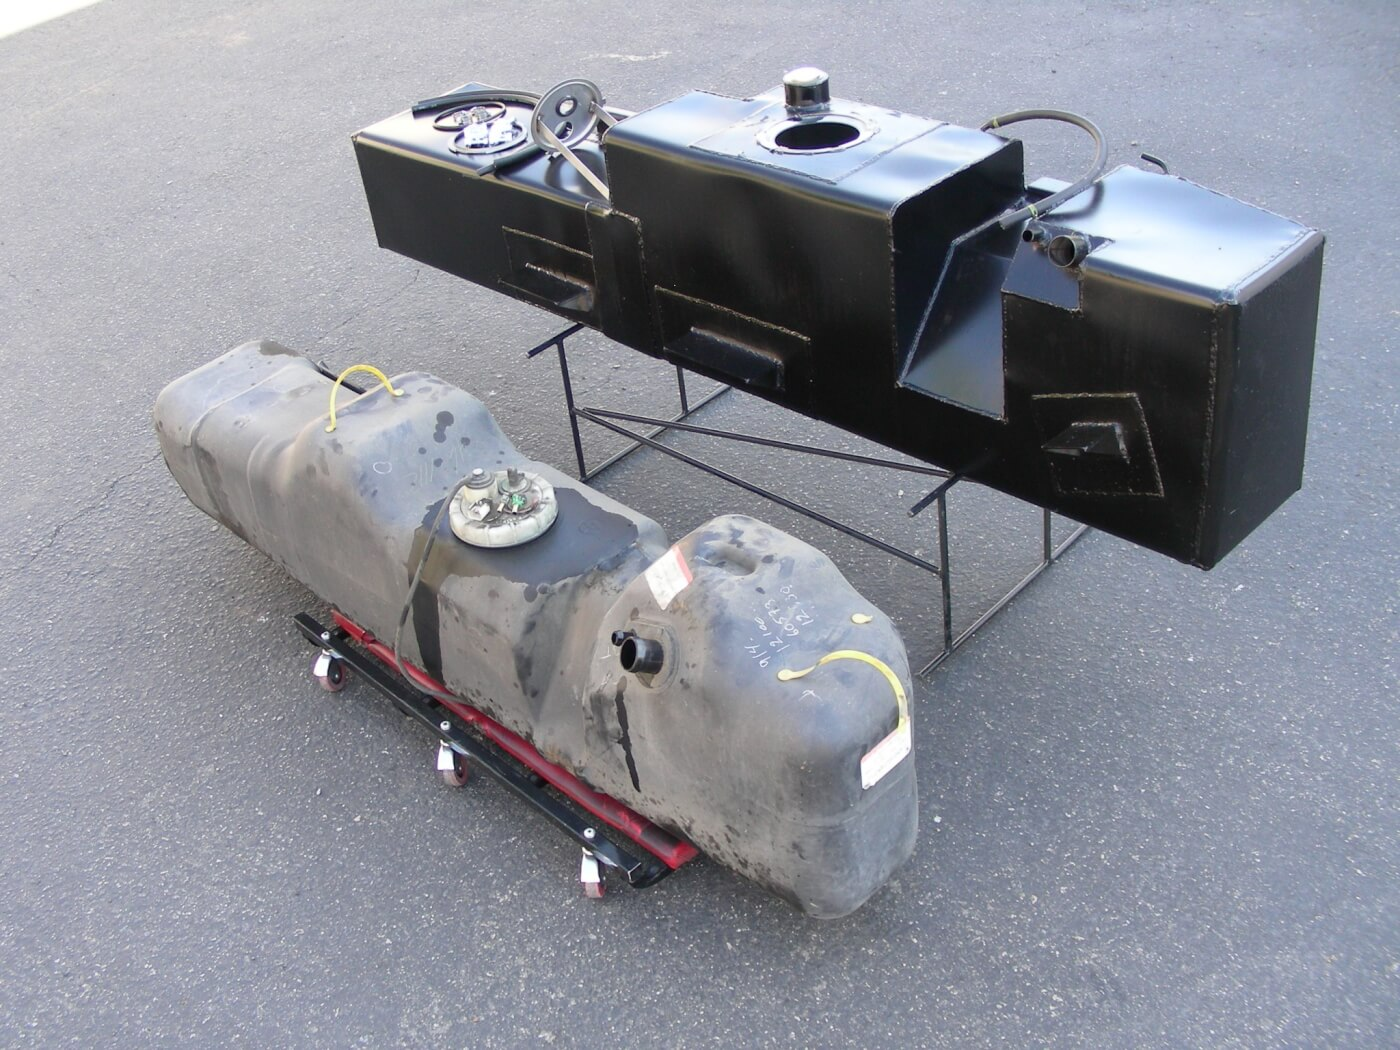 2. Note the dramatic difference in size between the factory unit and Aero's black steel tank. A custom-fabricated recess (right) was added to clear the gear splitter. All the necessary hardware and hoses are included, and rather than using straps that can rust over time, sturdy steel mounting tabs on the sides on the tank are through-bolted to the vehicle frame.